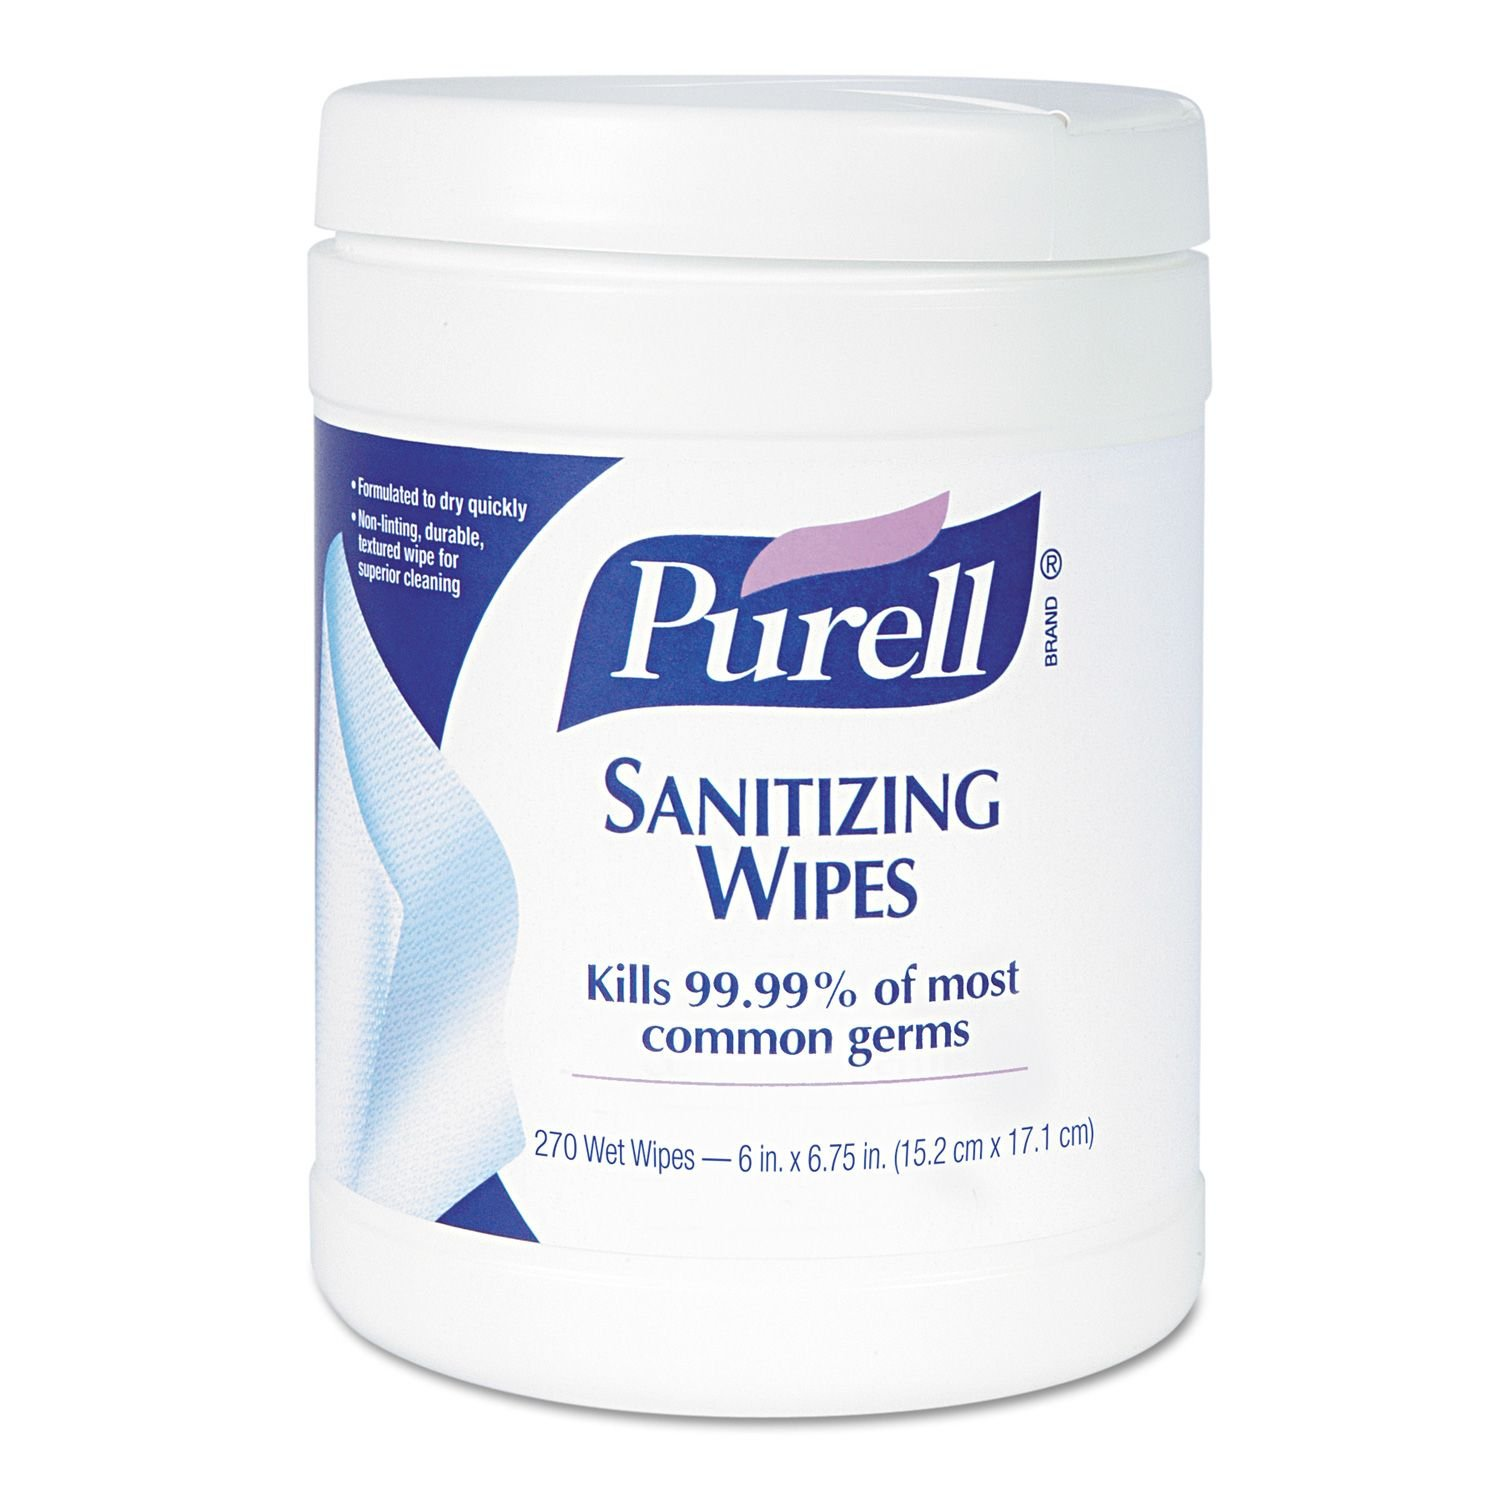 Purell - Sanitizing Hand Wipes, 6 x 6 3/4, White, 270/Canister - 12 Canisters/Carton kitnsn2828201nsn5220835 value kit nib nish 8520015220835 purell instant hand sanitizer nsn5220835 and nib nish 7510002828201 binder clip nsn2828201